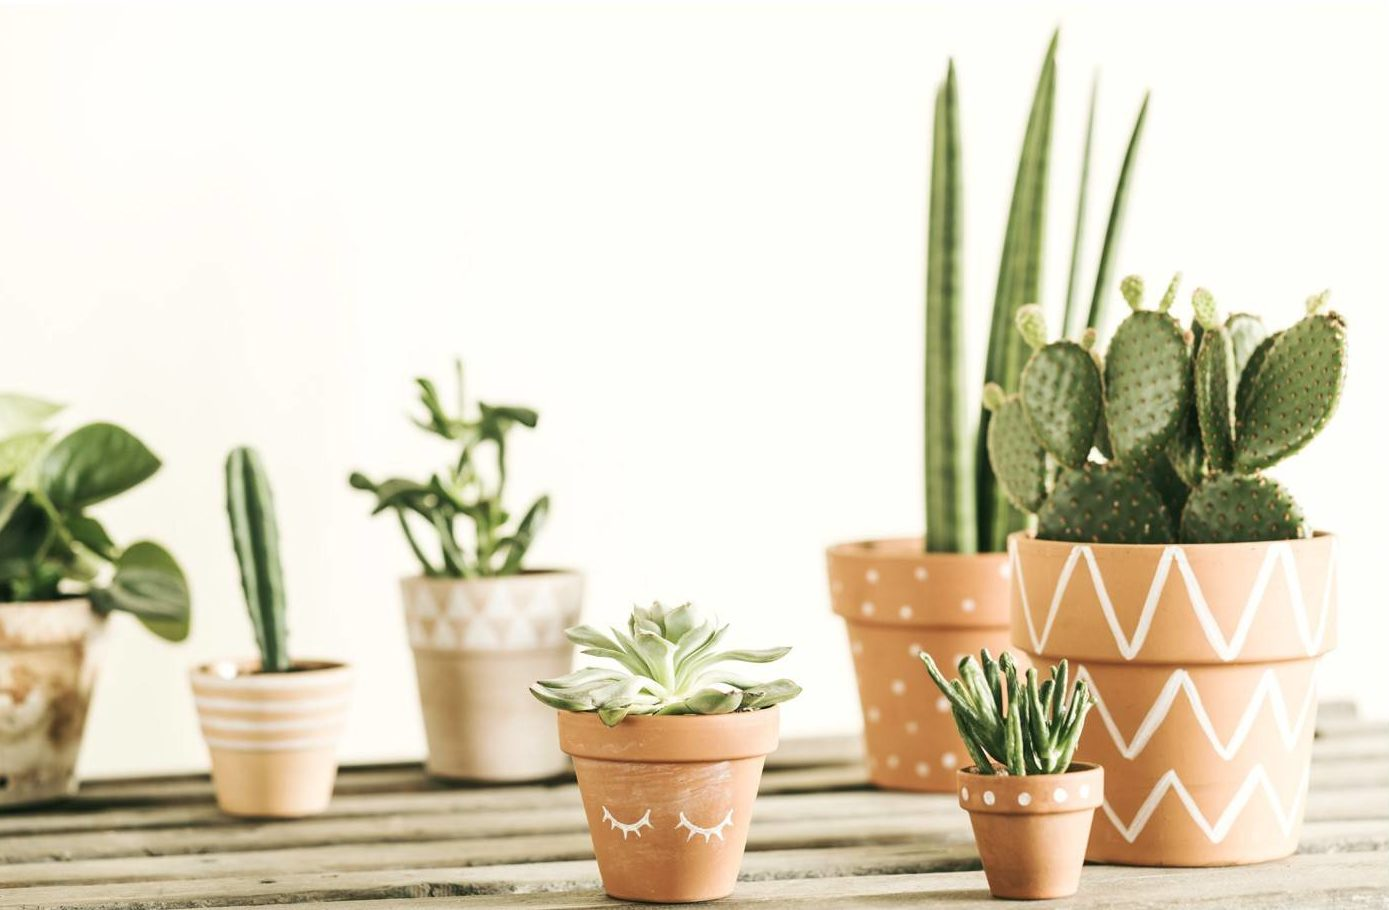 multiple cactus plants in different size clay pots